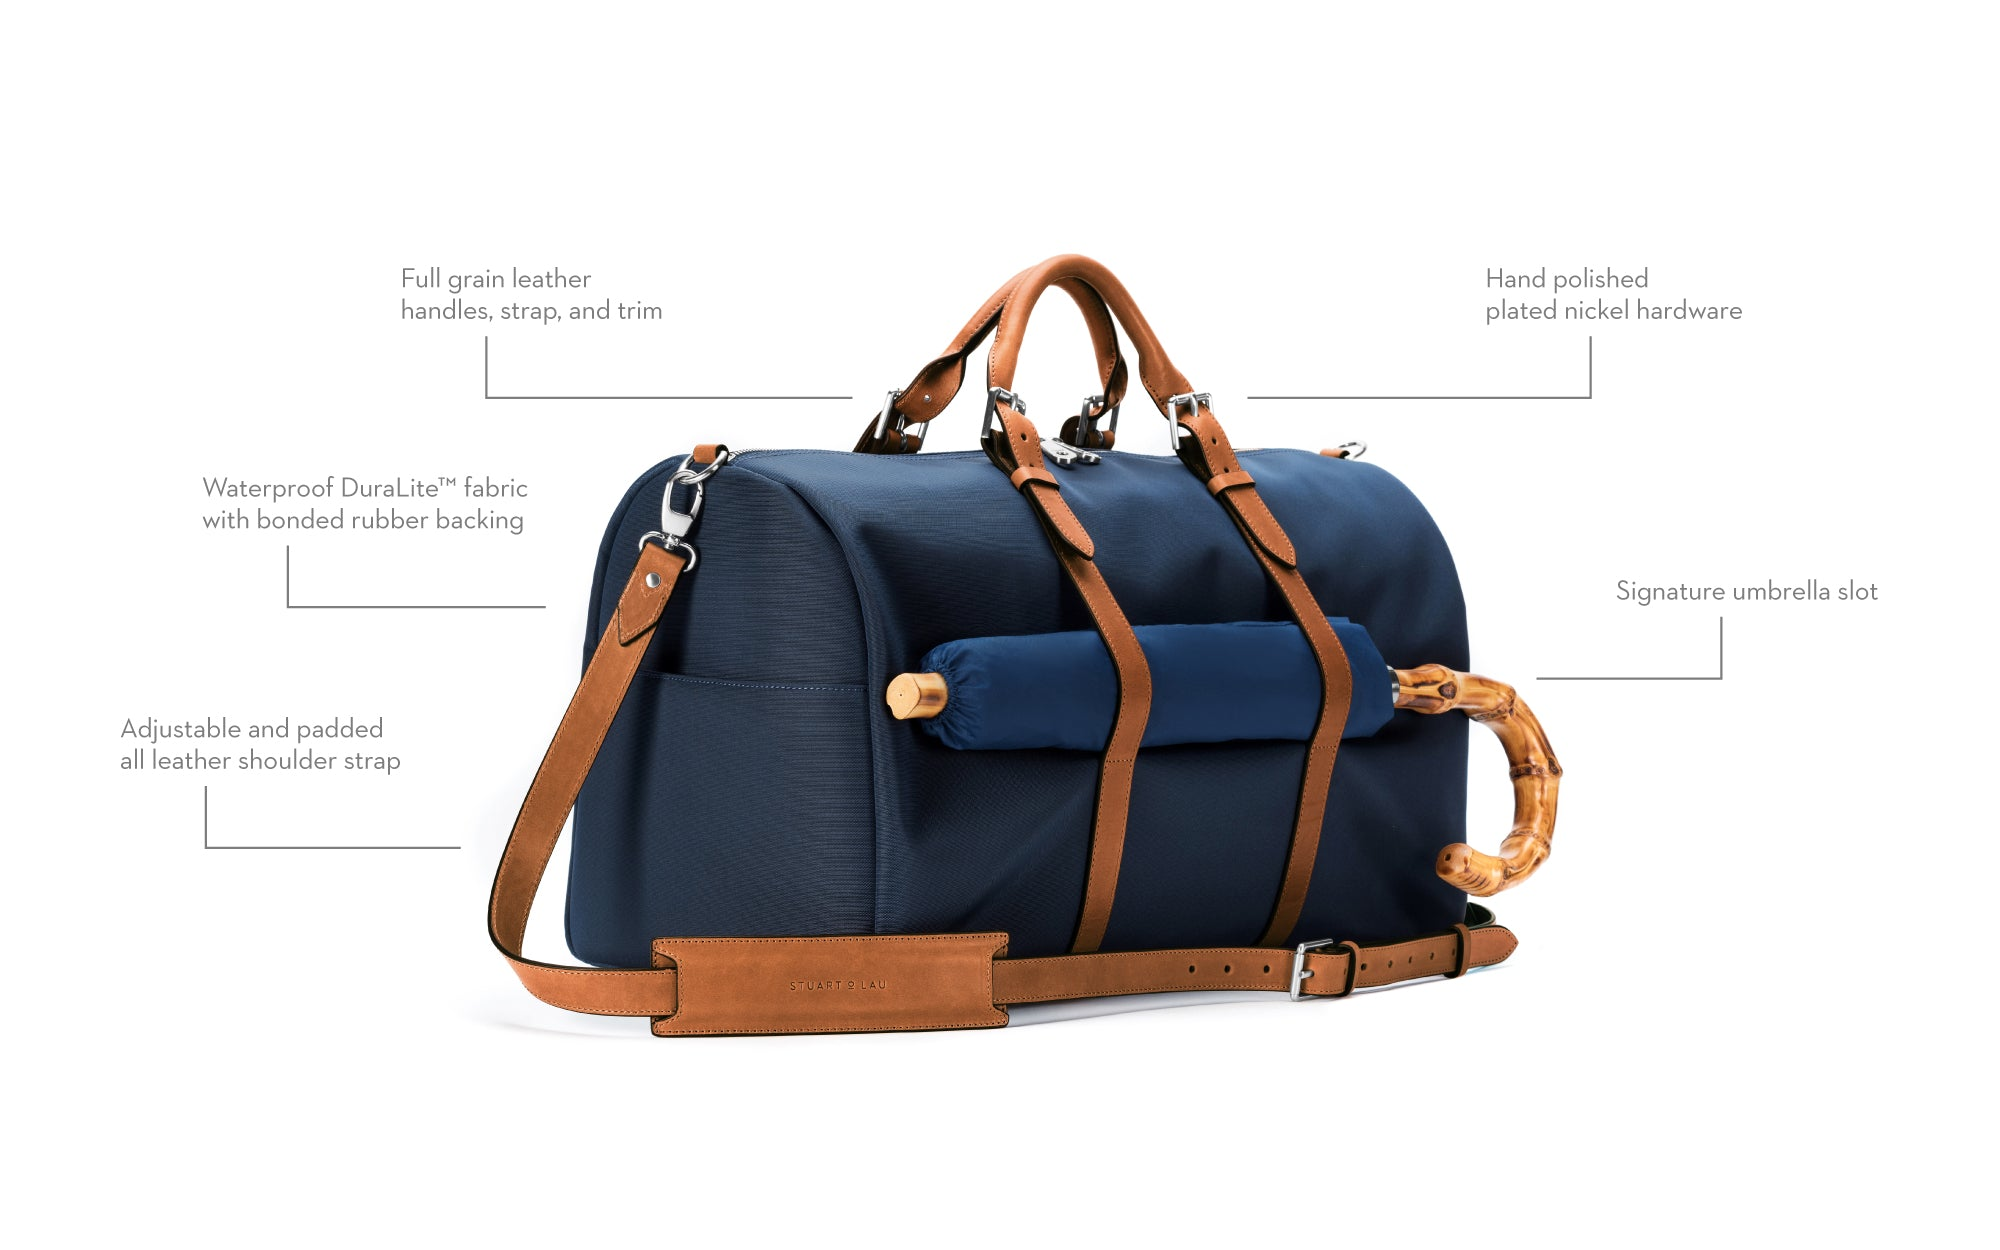 Stuart & Lau Monaco Weekender Bag with Infographics Listing Features